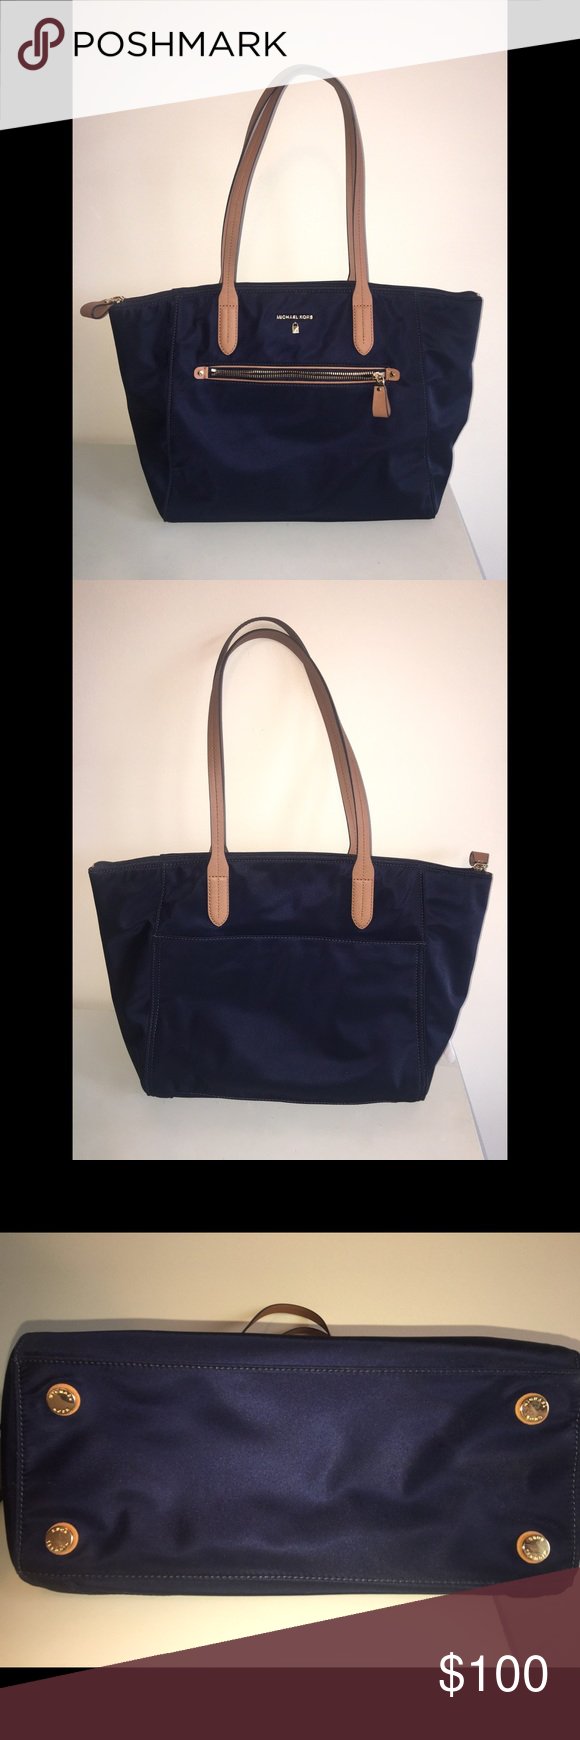 d1cf6f6344e5 Michael Kors Kelsey Large Top-Zip Tote (Navy) Brand new with tags Michael